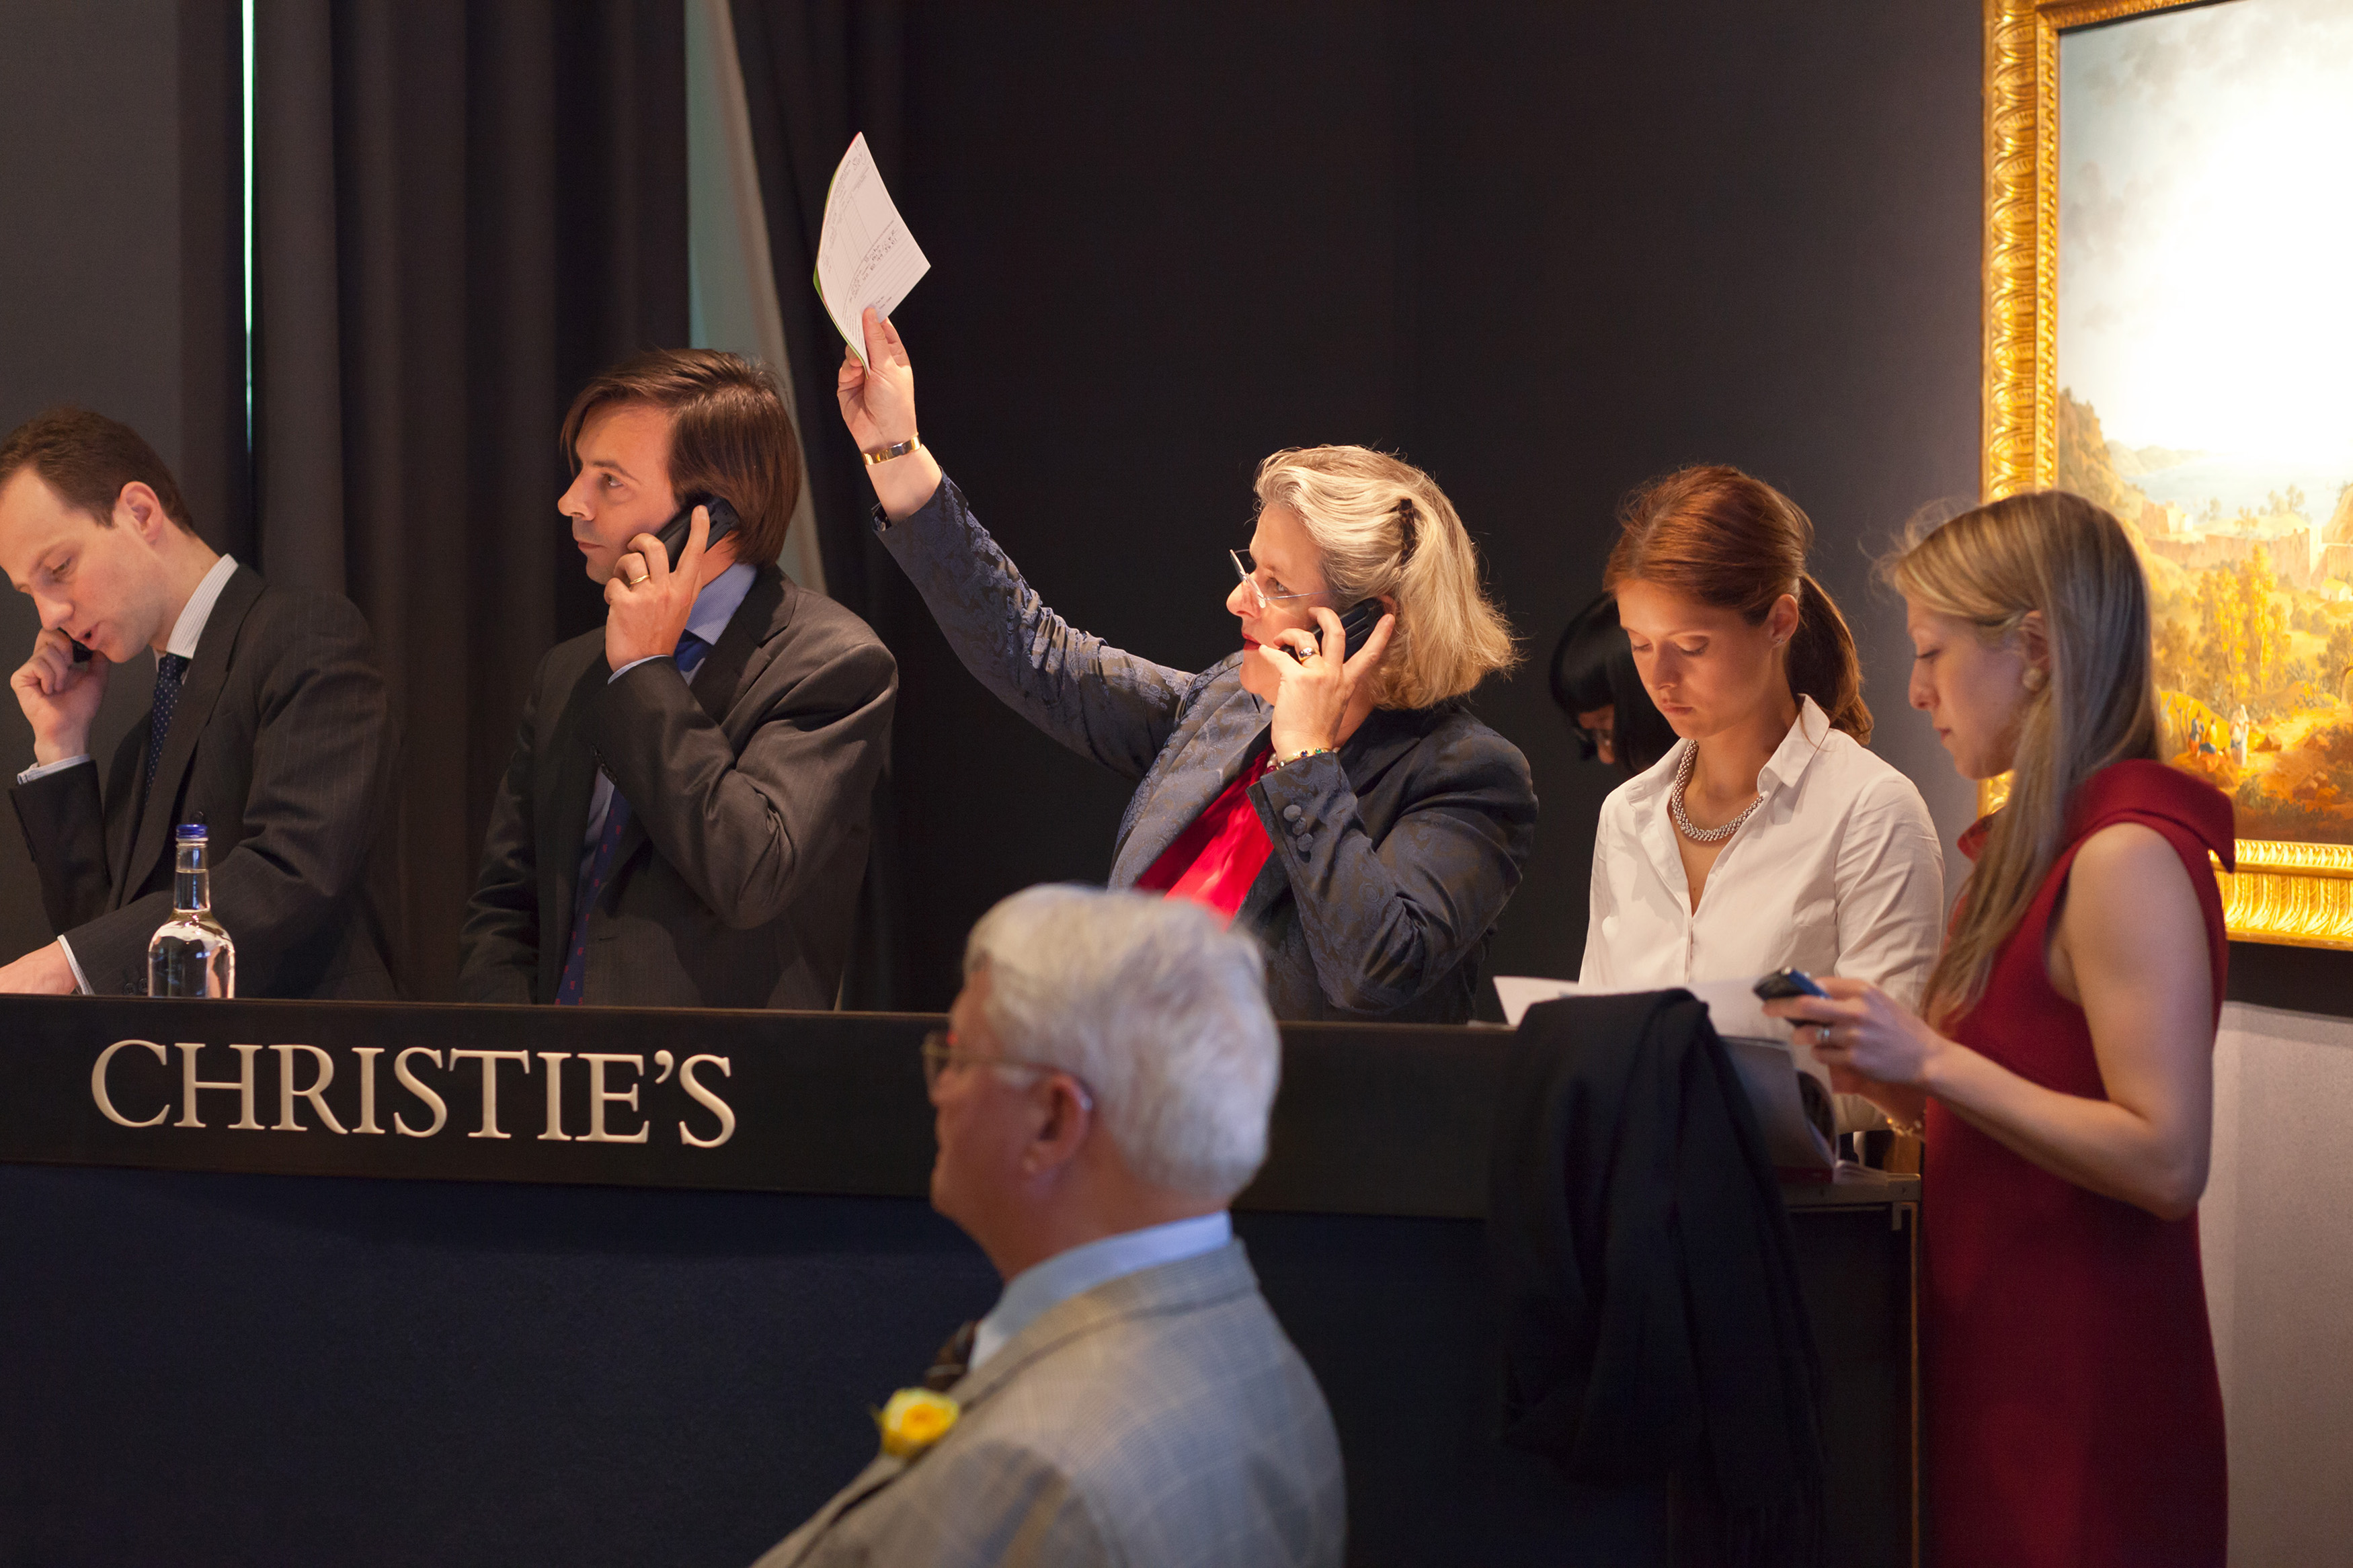 sothebys christies auction house scandal - HD3750×2500